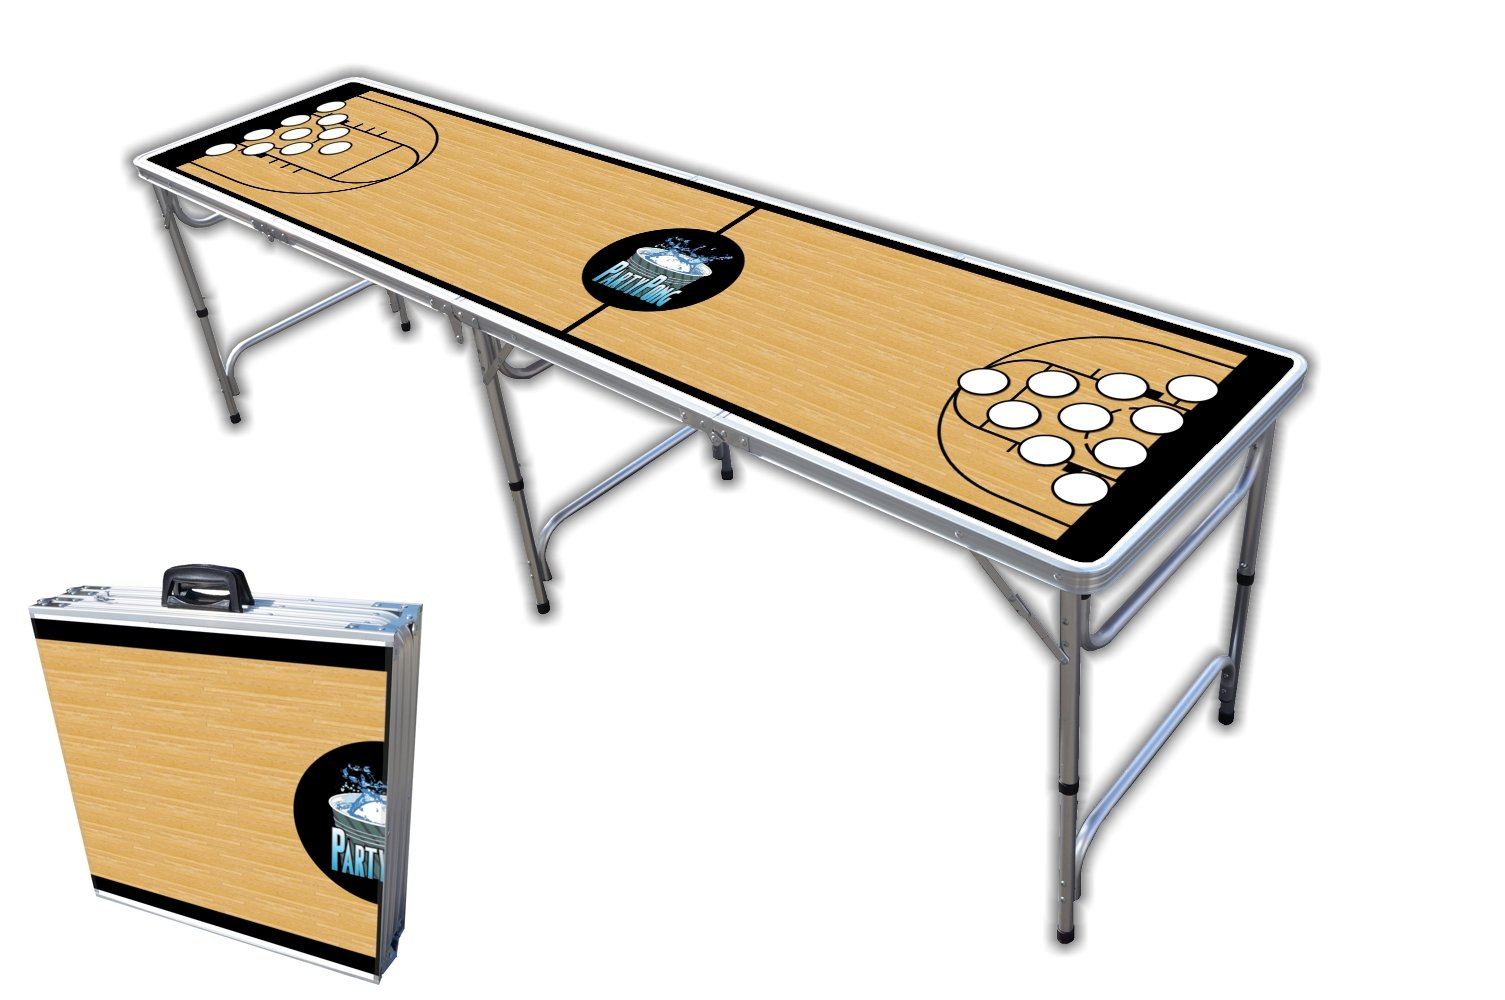 8-Foot Professional Beer Pong Table w/Cup Holes - Basketball Court Graphic